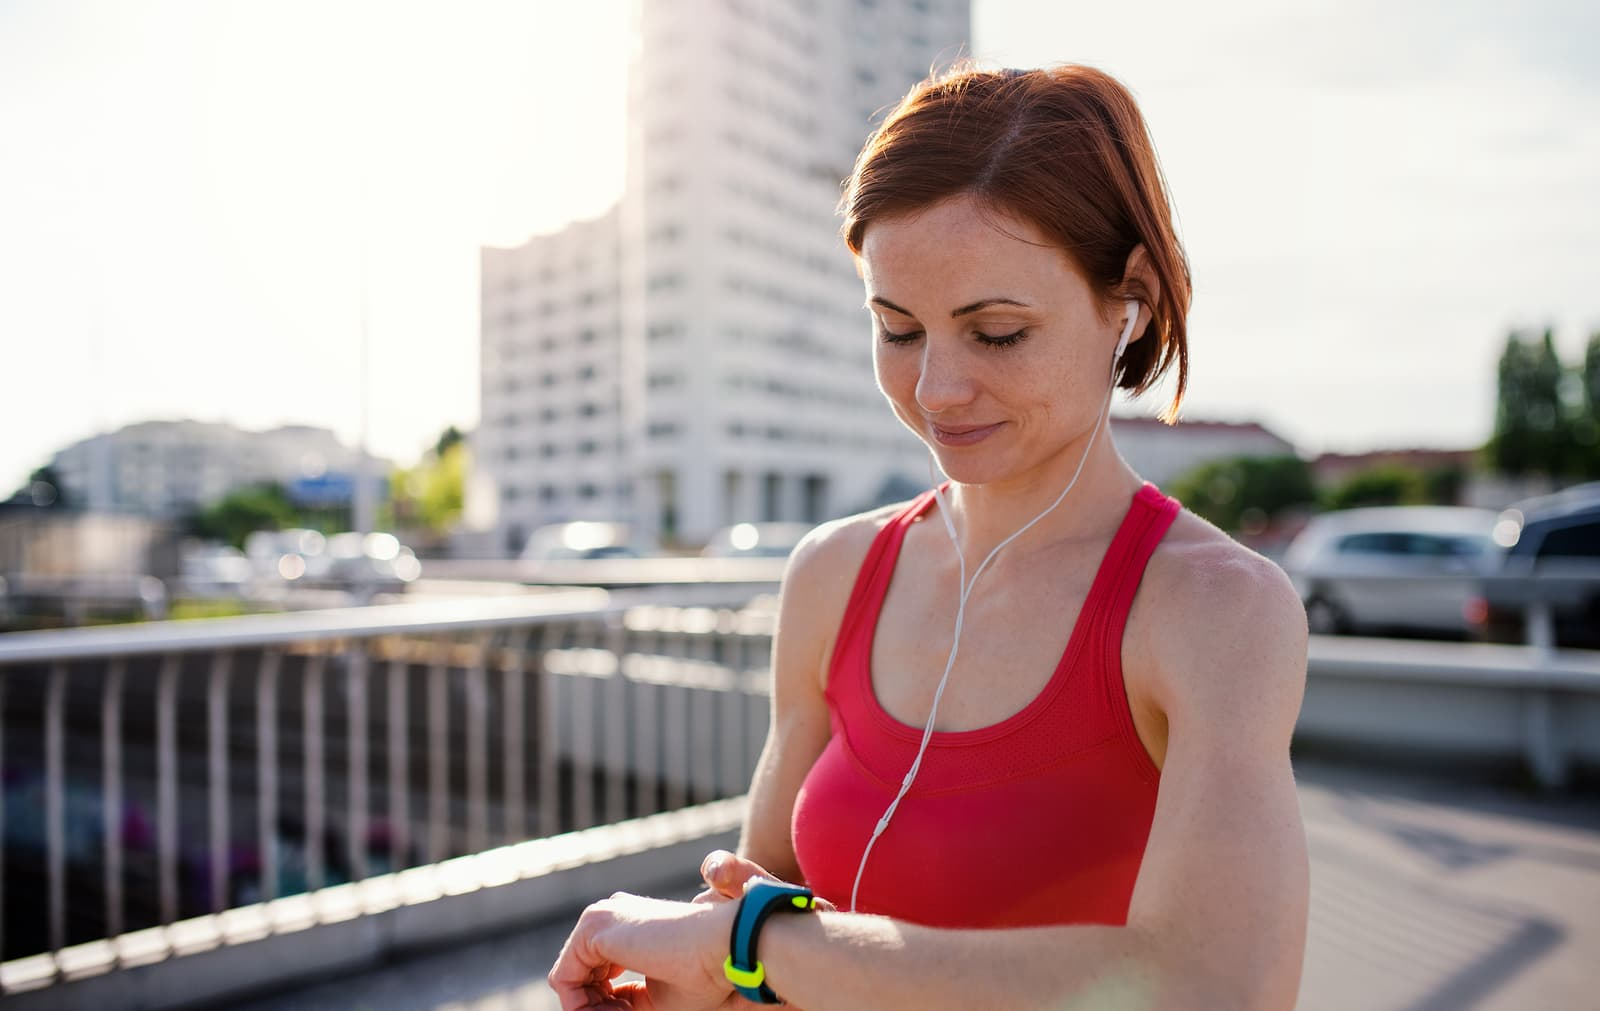 Young woman runner with earphones in city, using smartwatch.